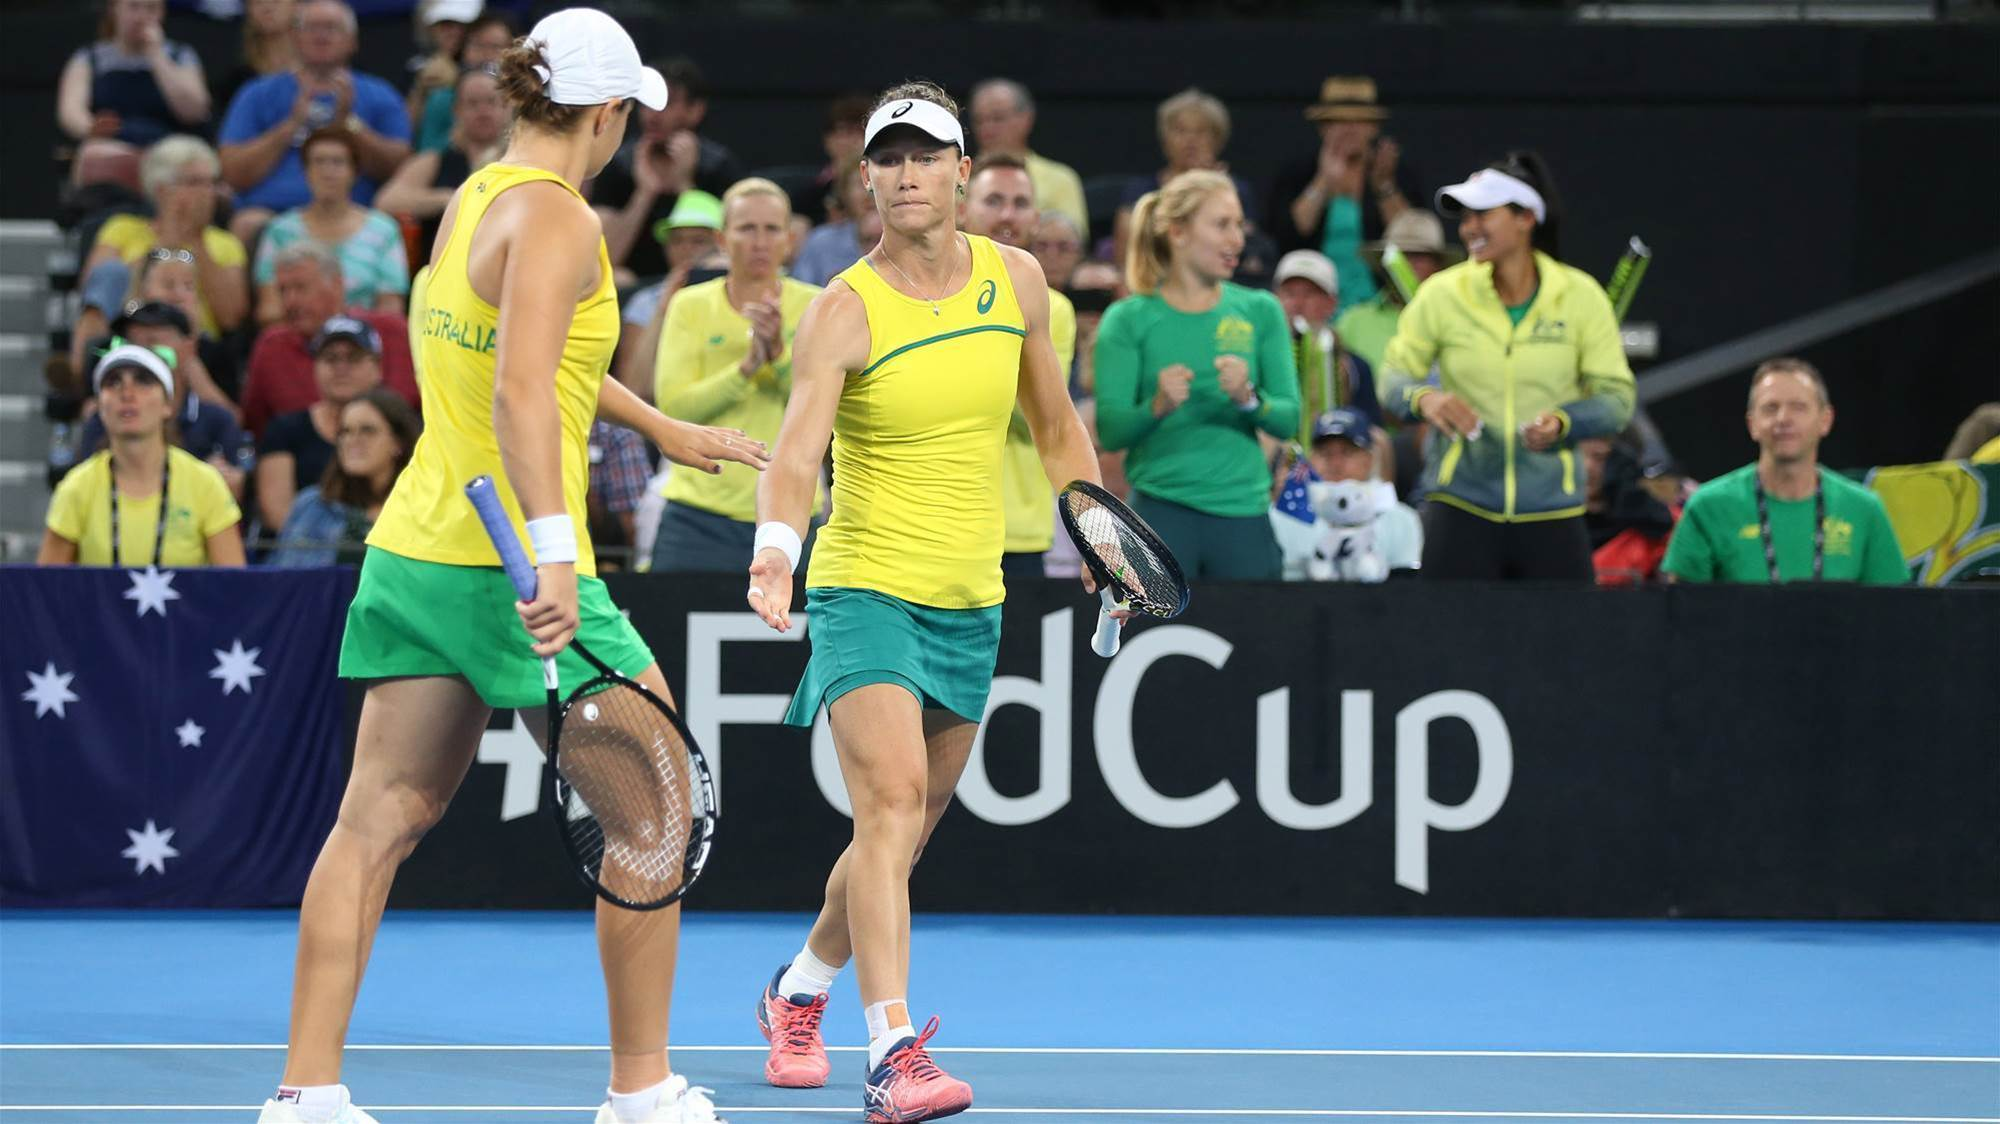 Australia break 26-year Fed Cup drought